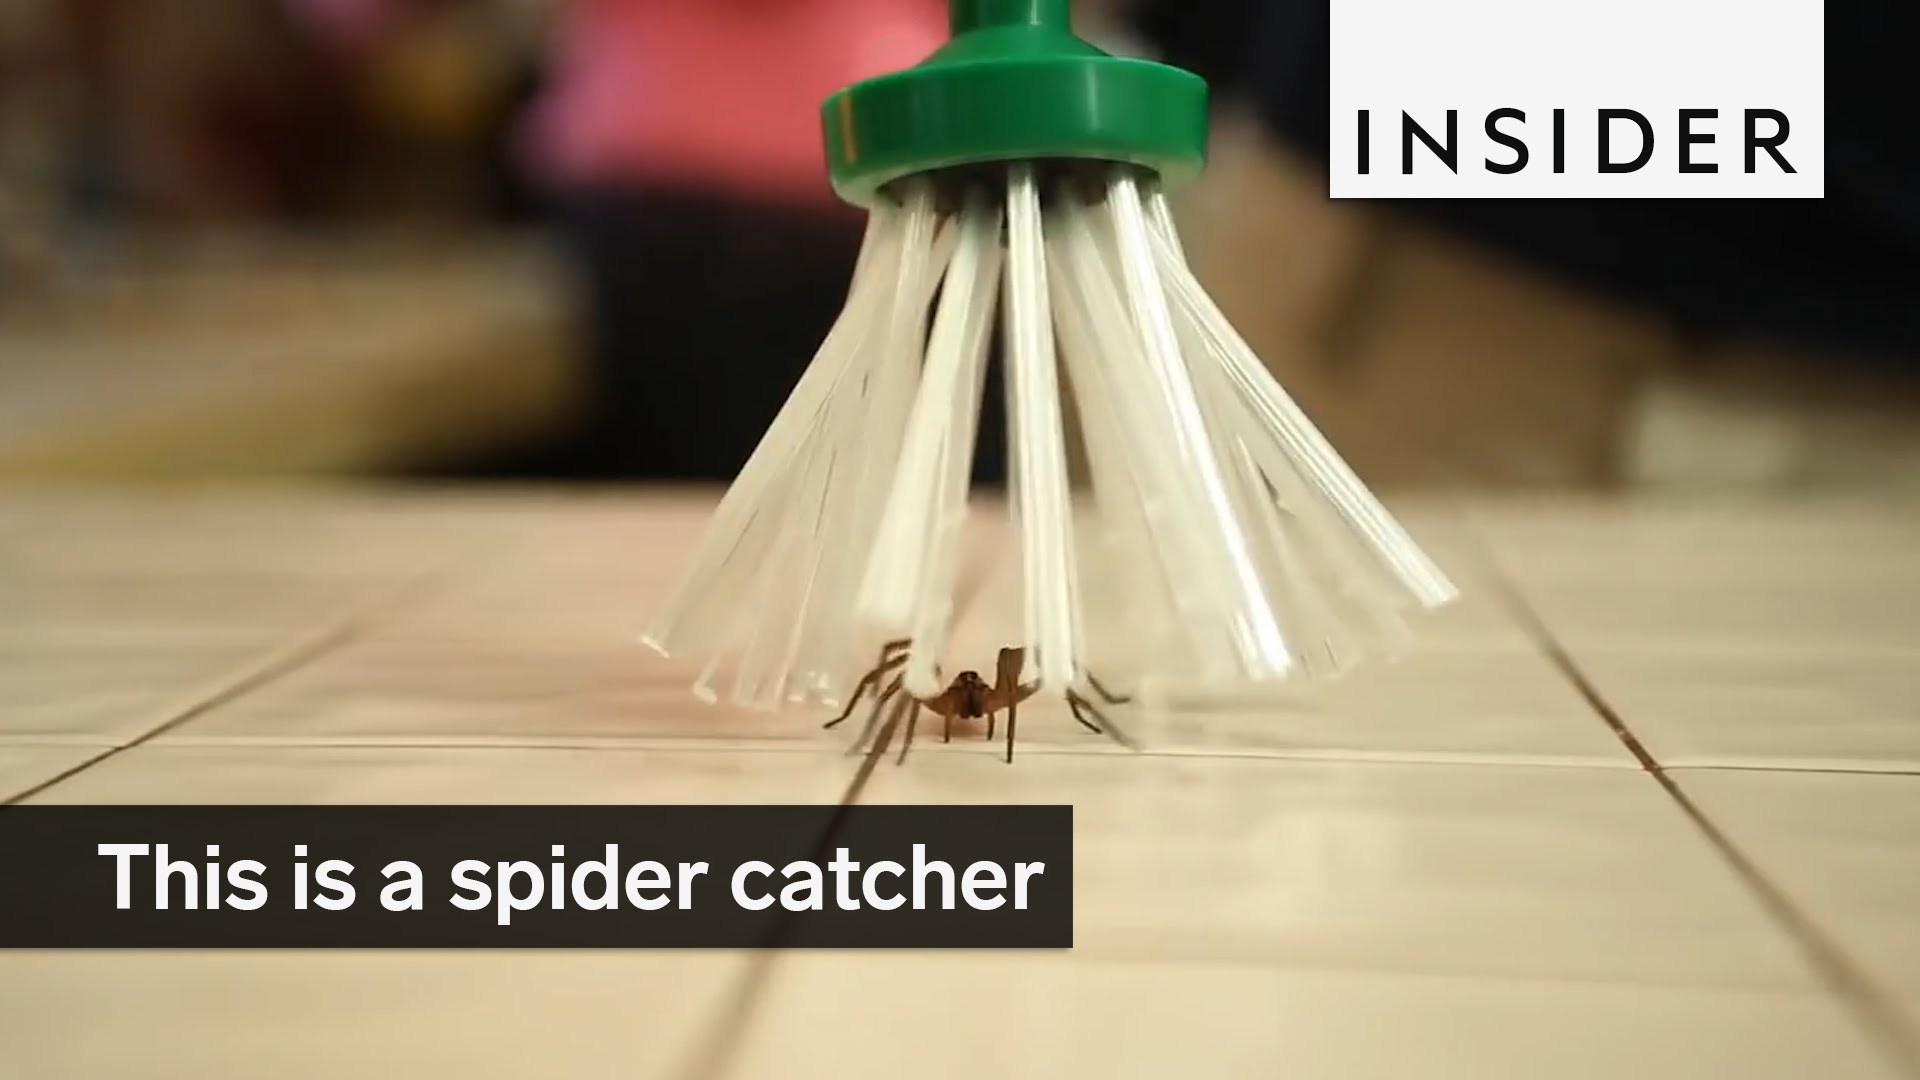 A Spider Catcher